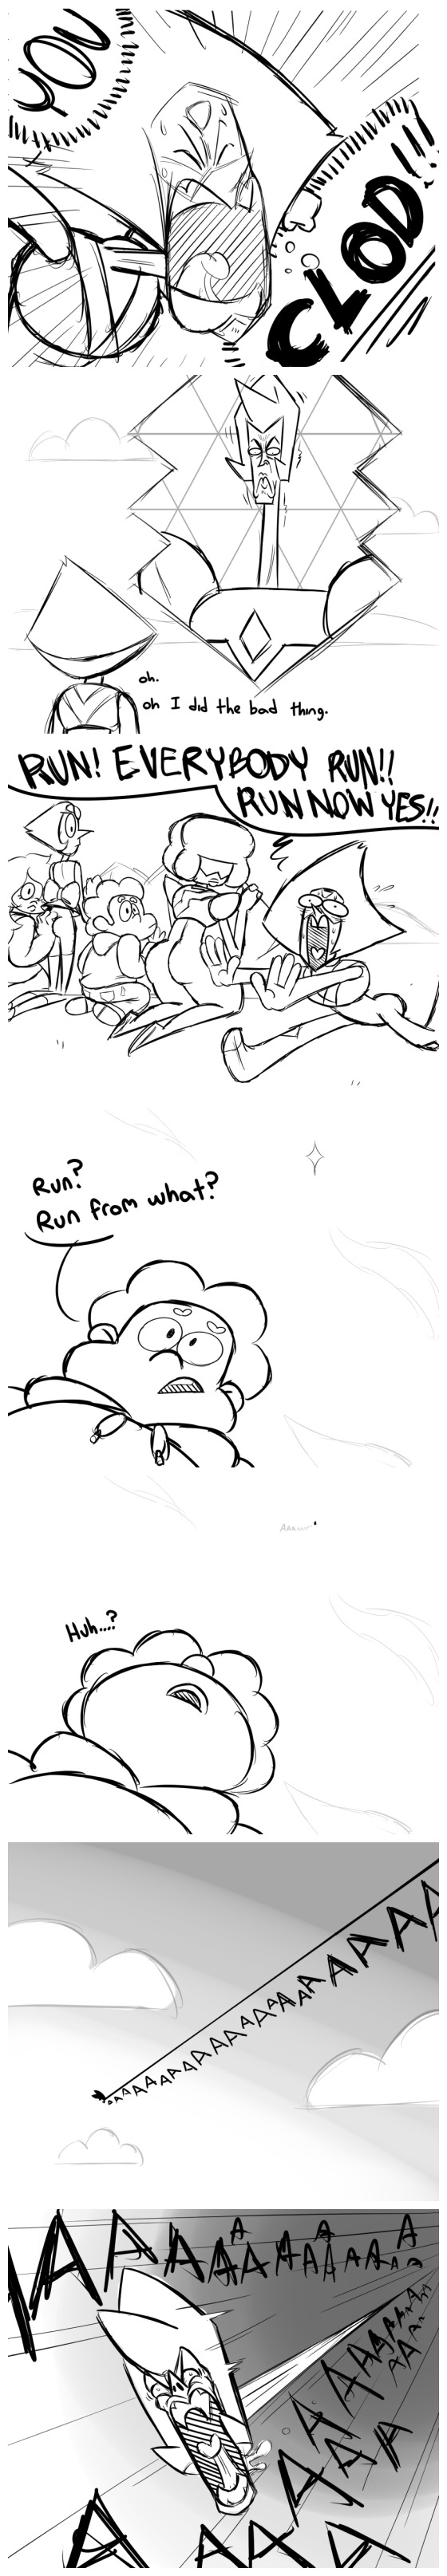 art deviantart diamond blue comic on inadequate jolleboi by tgr